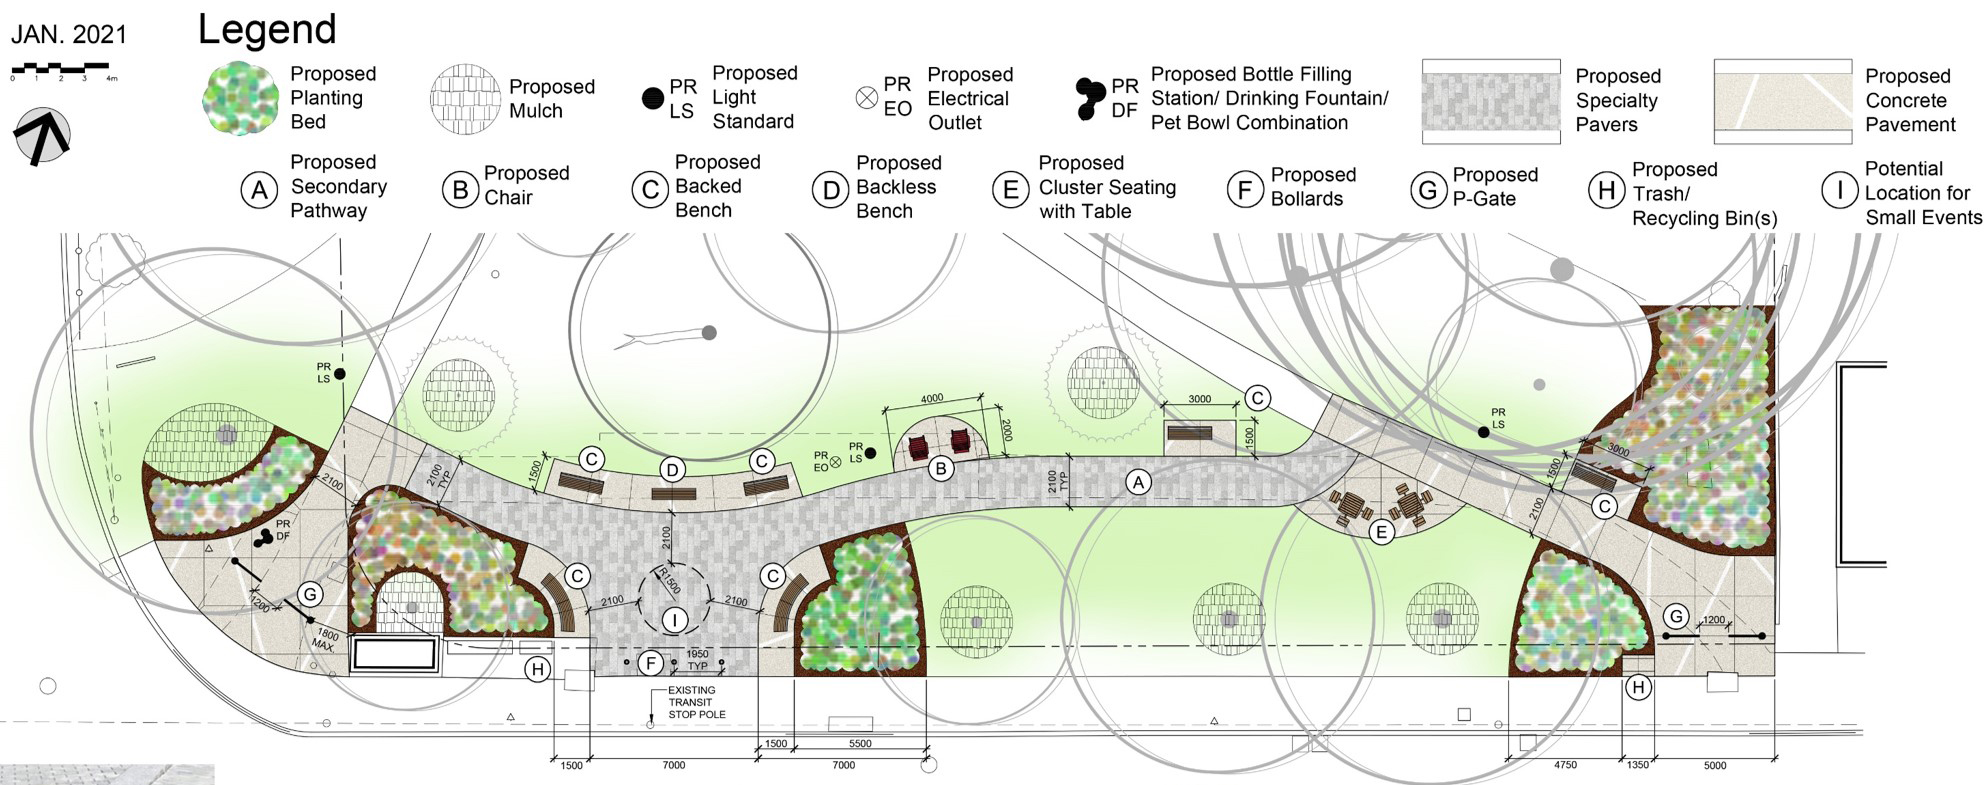 Plan of Preferred Concept Design. Specialty paver secondary pathway in an east-west curvilinear alignment and the proposed small plaza/ seating area connected to the existing sidewalk. Proposed locations for new planting: to frame the west and east park entrances; and the small plaza/ seating area. Hardy, native and pollinator friendly plant species will be considered. New drinking fountain at the west park entrance, new light standards along the secondary path, and new electrical outlet by the small plaza/ seating area.